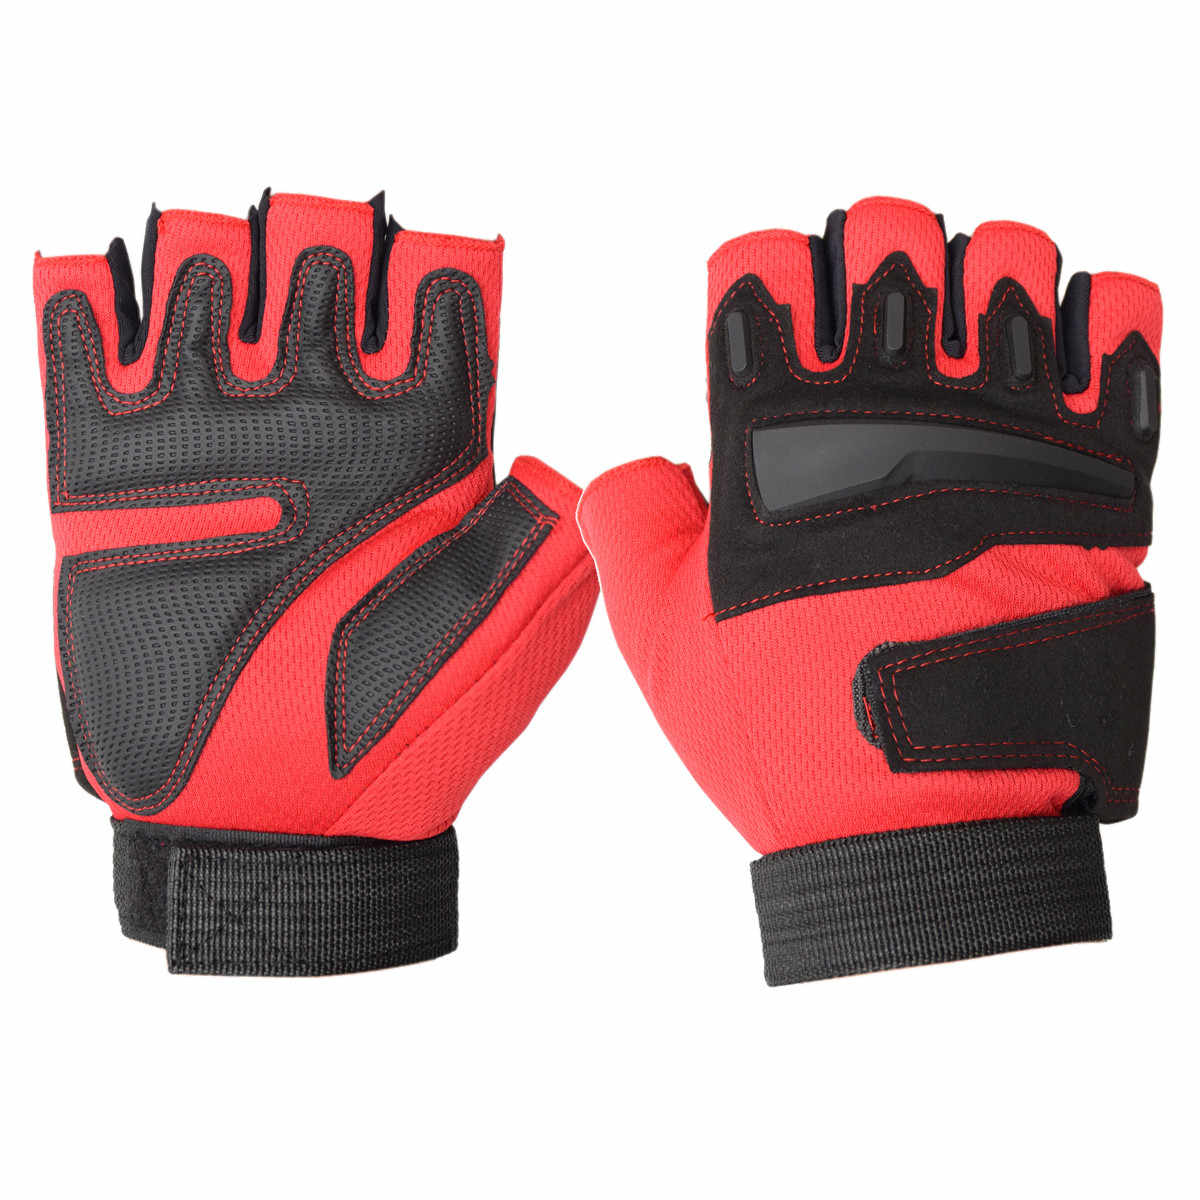 Gym Gloves Half Finger Breathable Weightlifting Fitness Gloves Men Women Exercise Training Wrist Sports Gloves Anti-Skid Glove